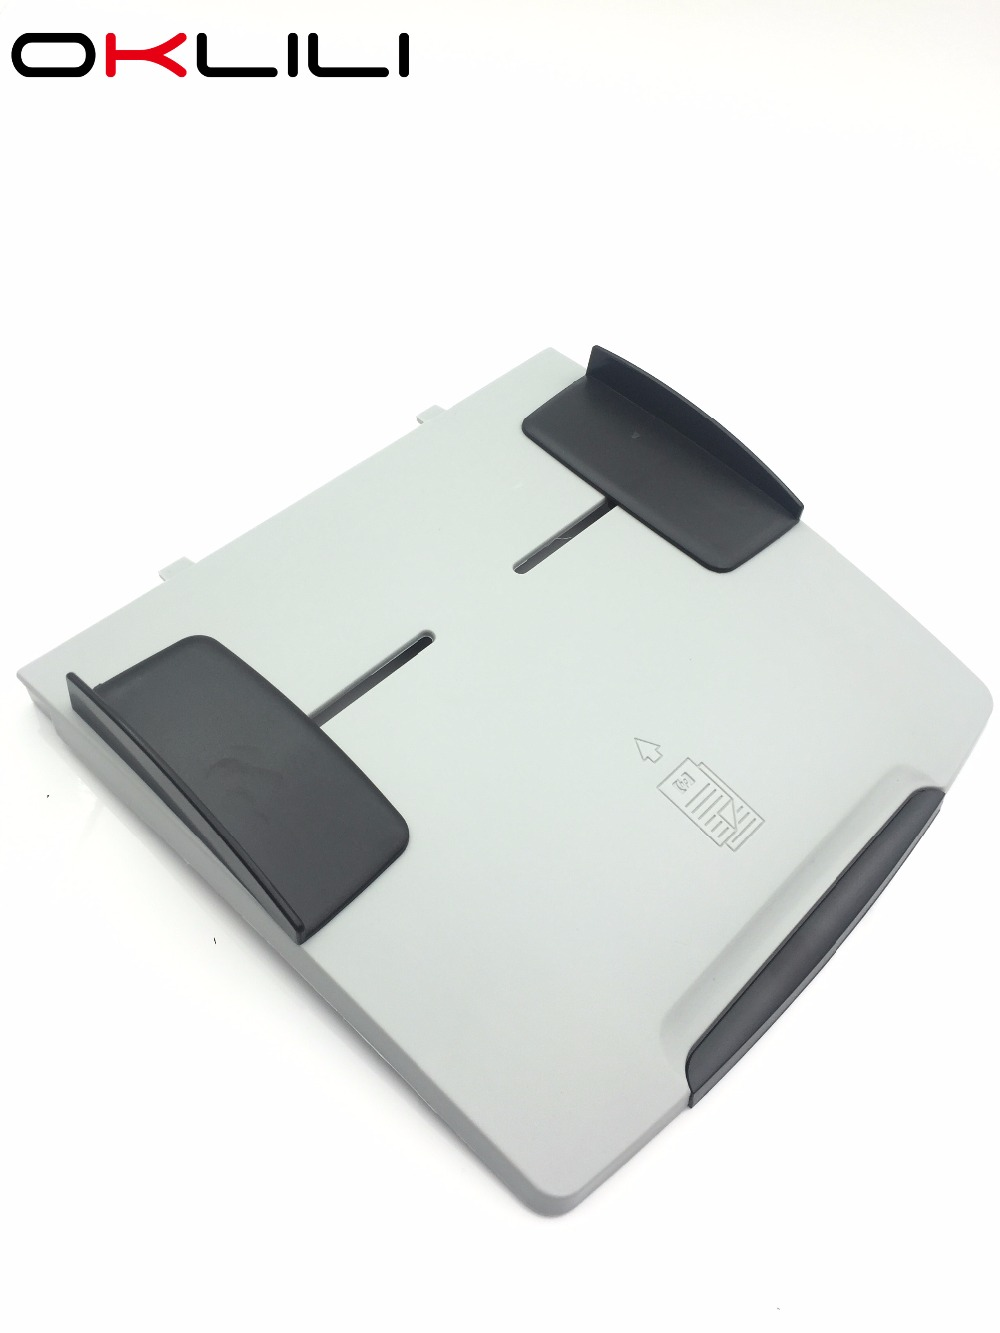 Q6500-60119 Q3948-60214 CB534-60112 ADF Paper Input Tray for HP 1522 CM1312 CM2320 3390 3392 M2727 2820 2840 3050 3052 3055 labsolu rouge bx губная помада 387 crushed rose